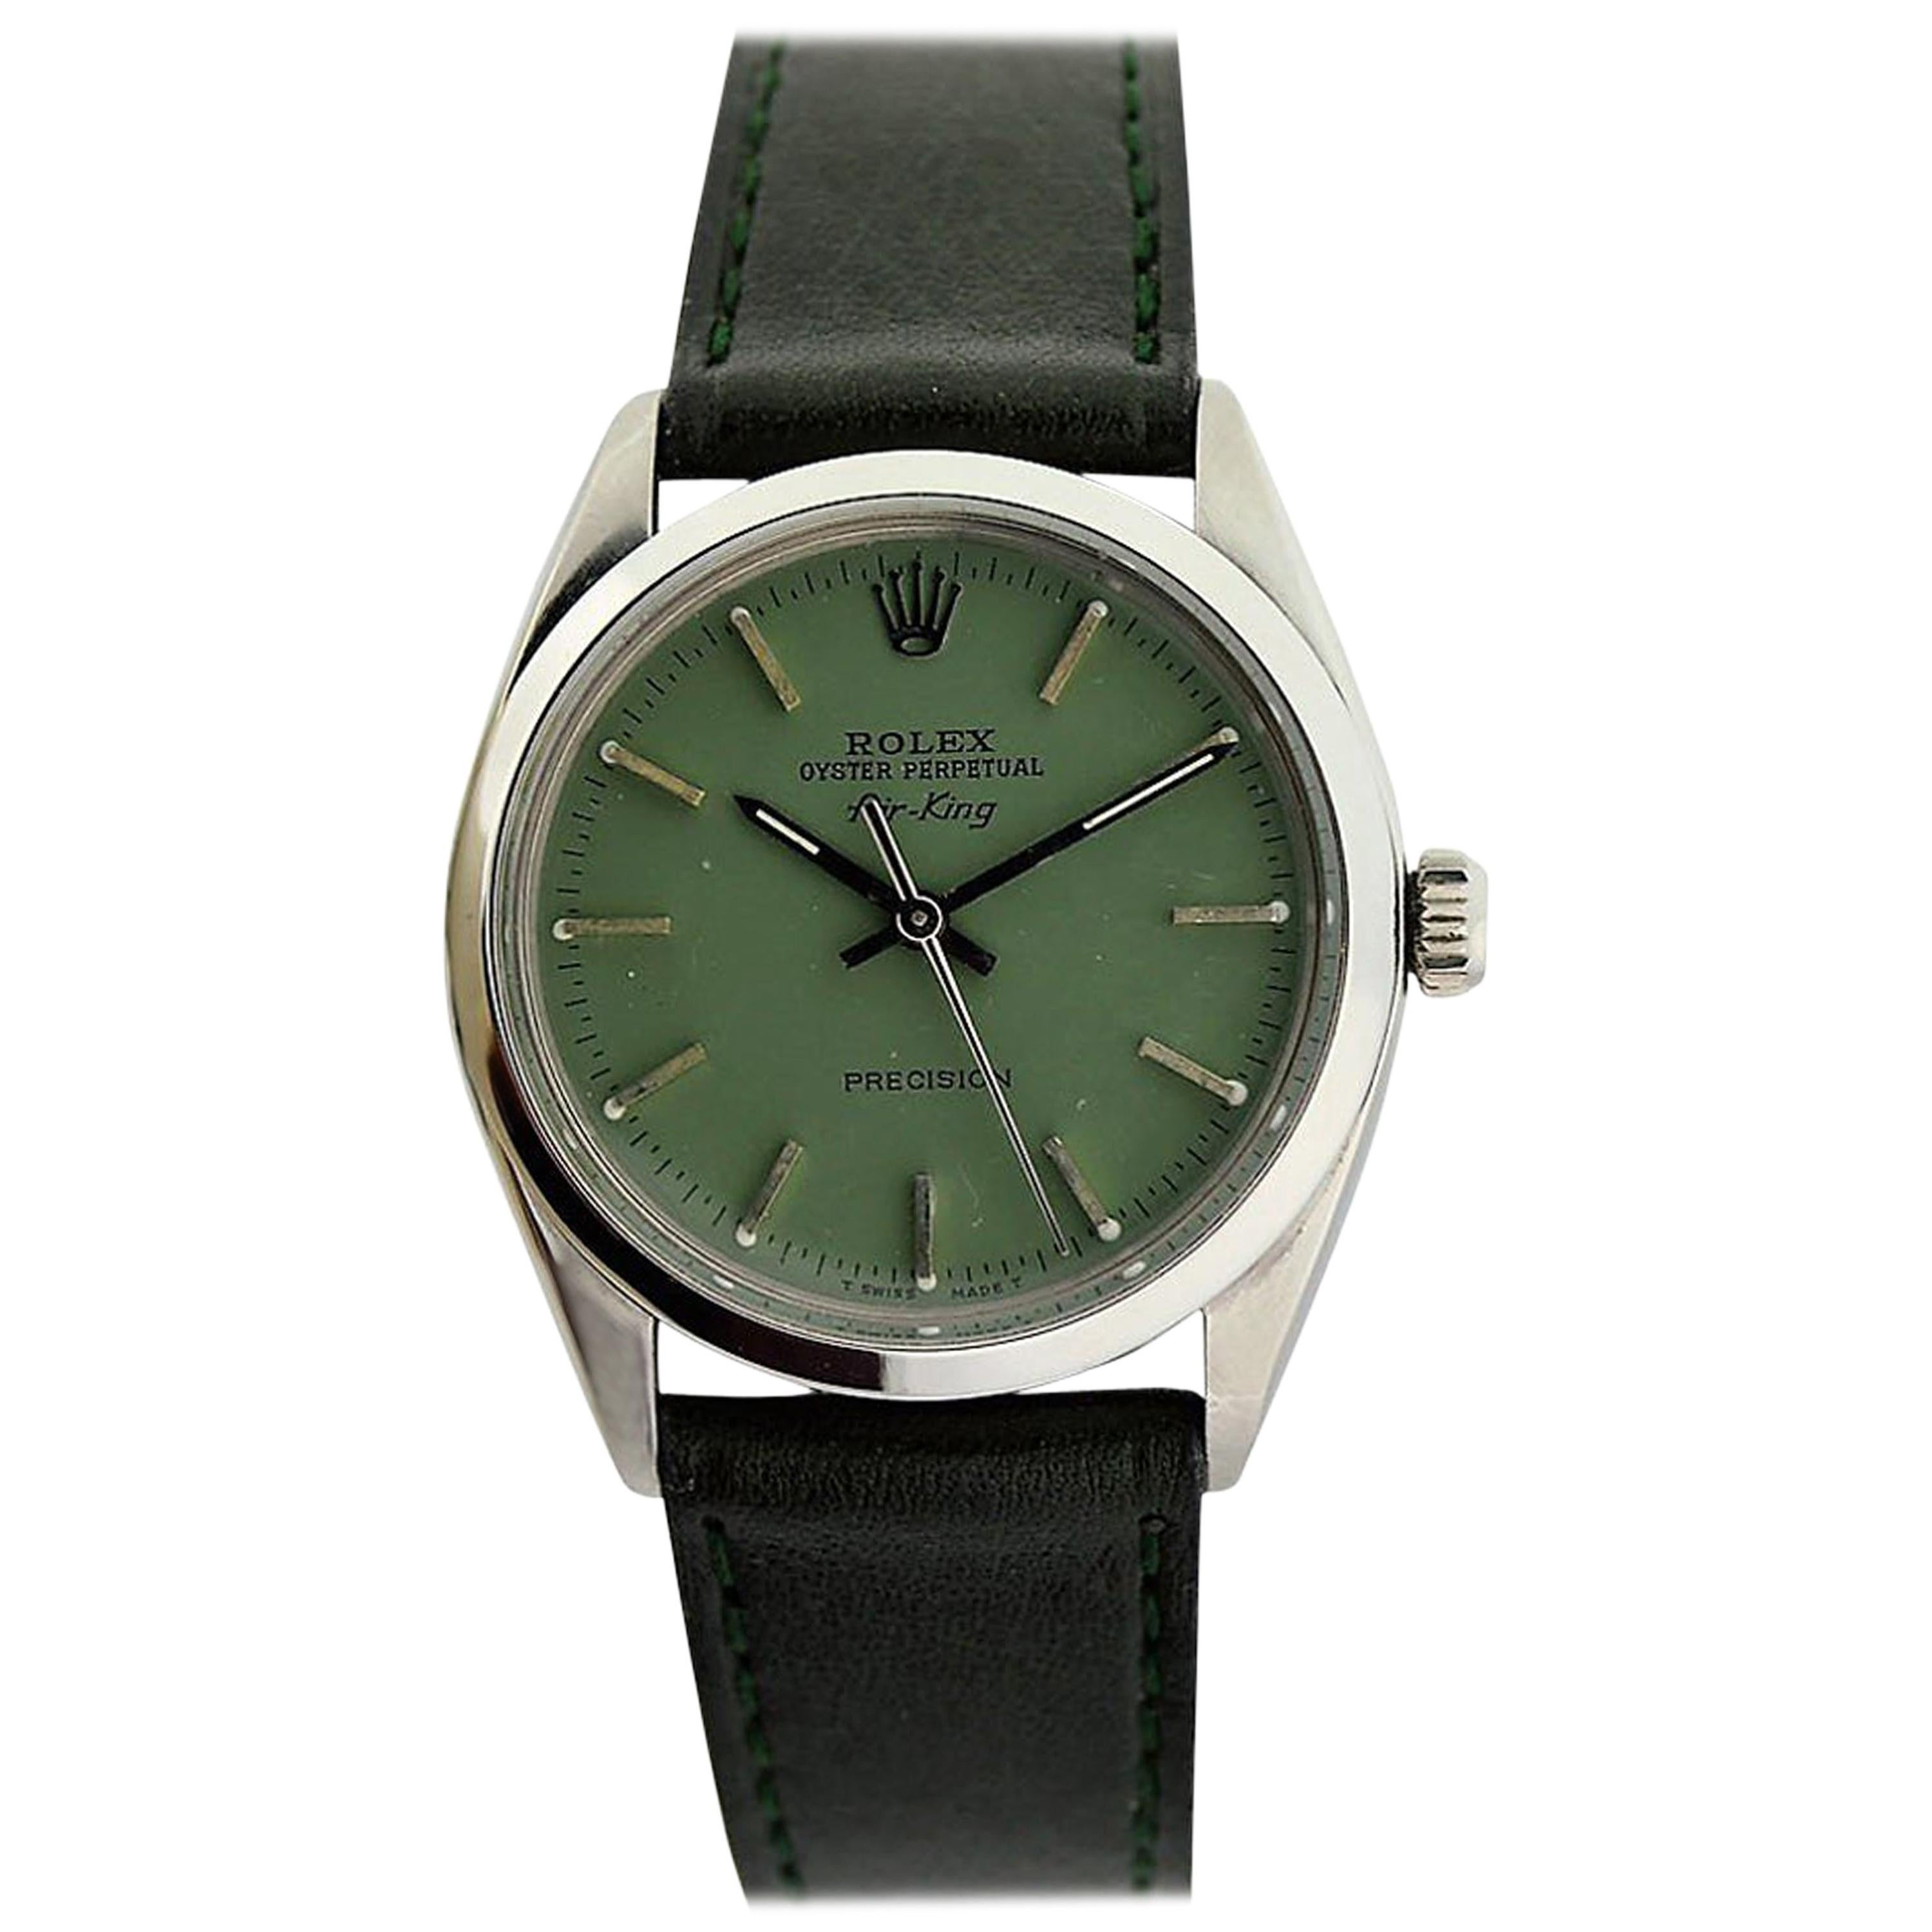 Rolex Stainless Steel Air King with Custom Green Dial, circa 1970s